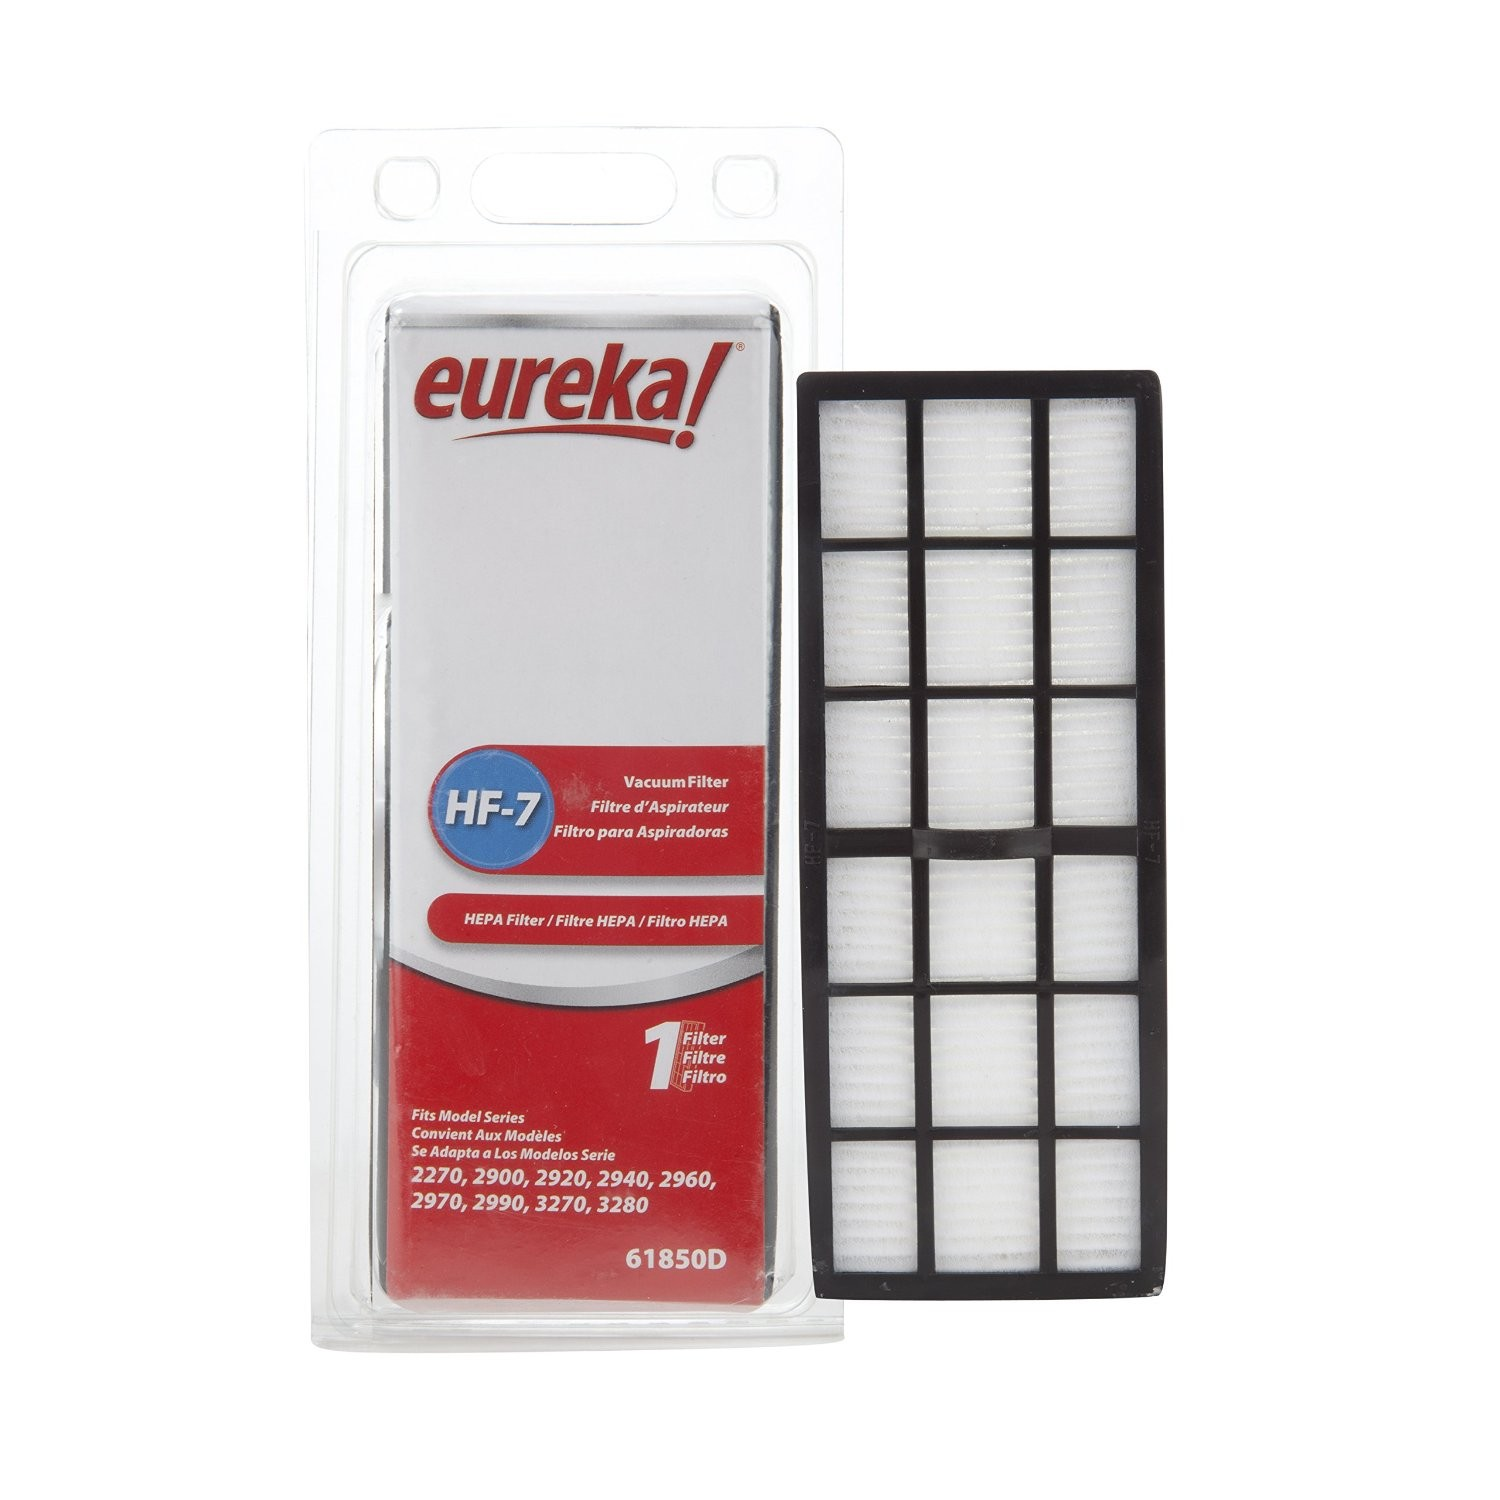 Eureka Genuine HF-7 Hepa Filter